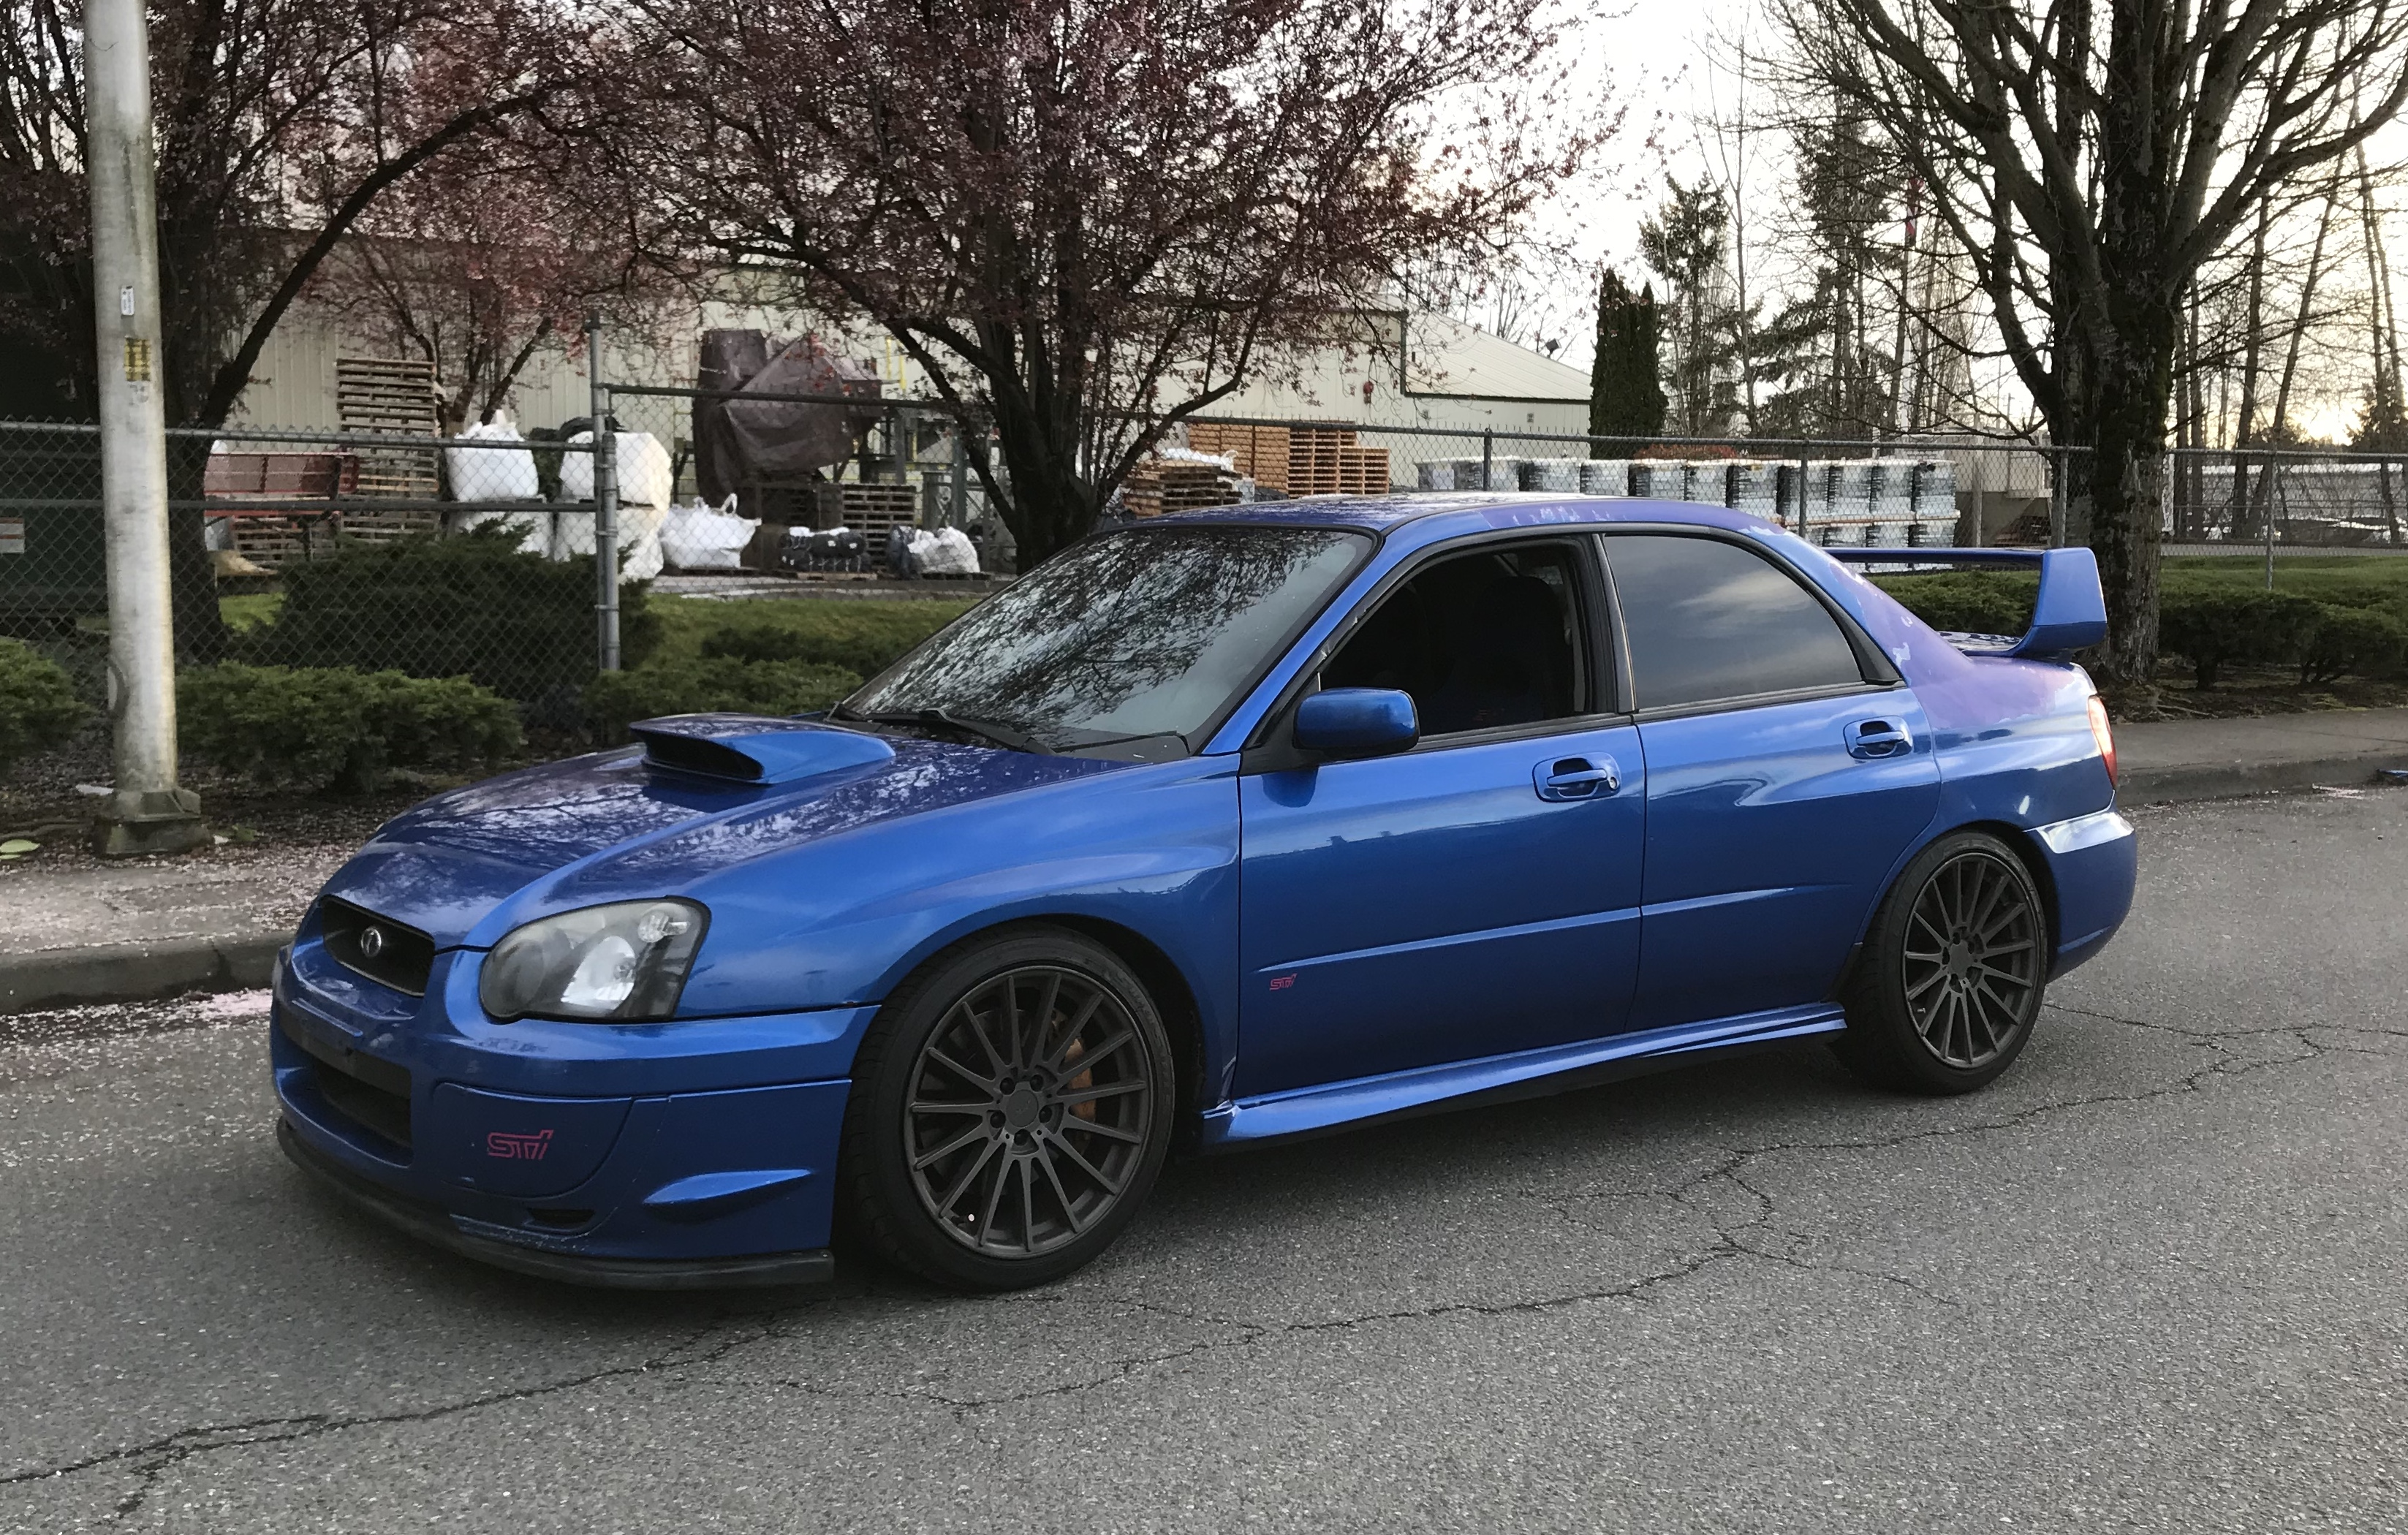 2004 subaru impreza wrx sti adamsgarage sodo moto. Black Bedroom Furniture Sets. Home Design Ideas